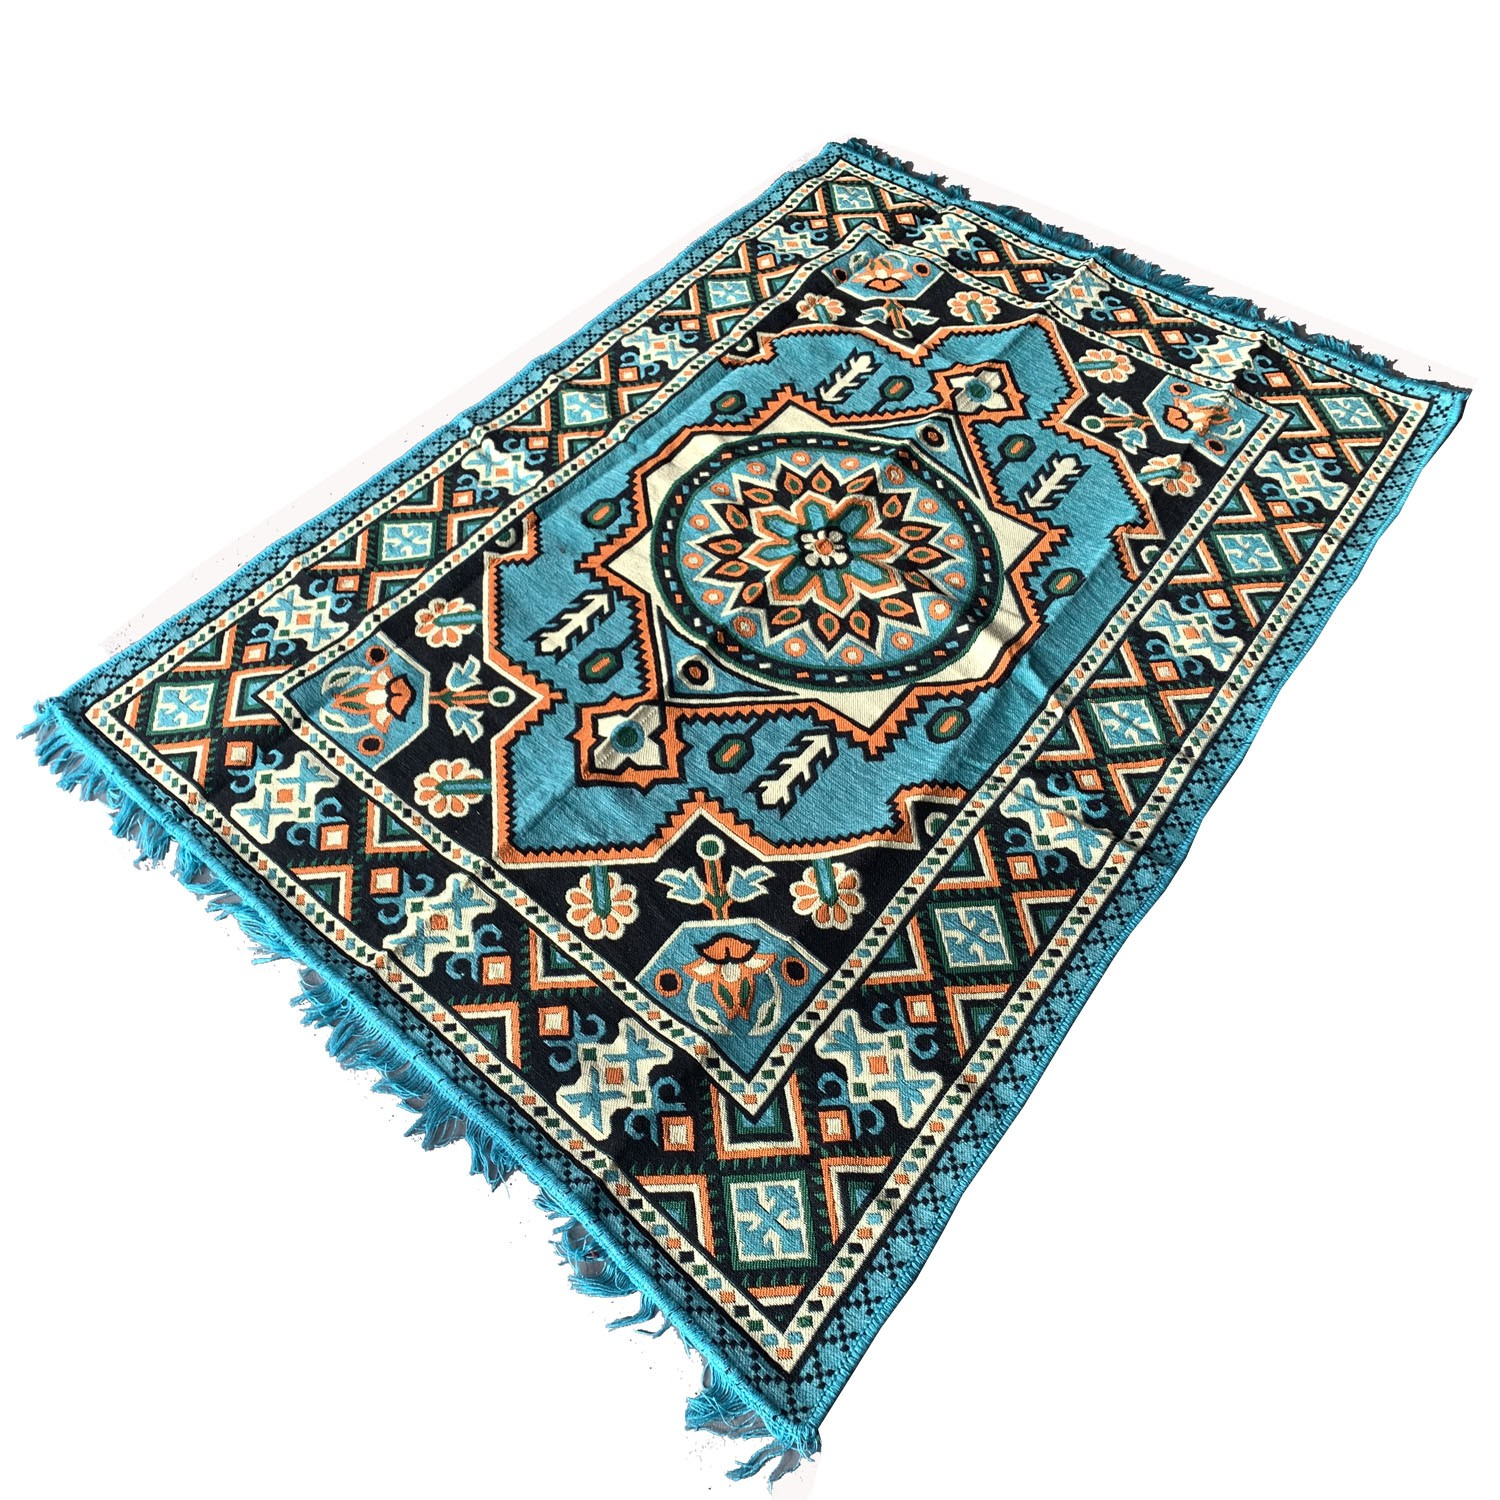 190 x 135 cm Blue oriental Turkish kilim rug